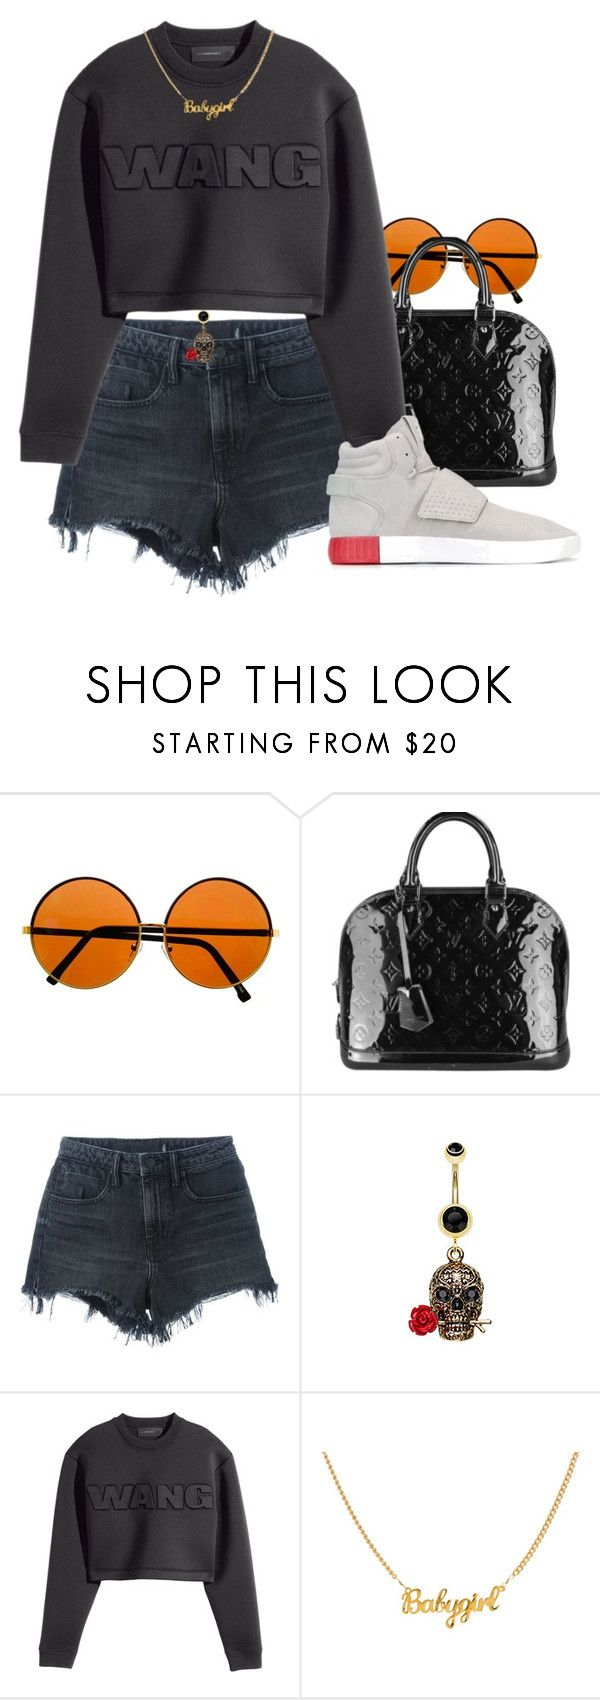 """320"" by dkleaa ❤ liked on Polyvore featuring Louis Vuitton, Alexander Wang, H&M and adidas Originals"